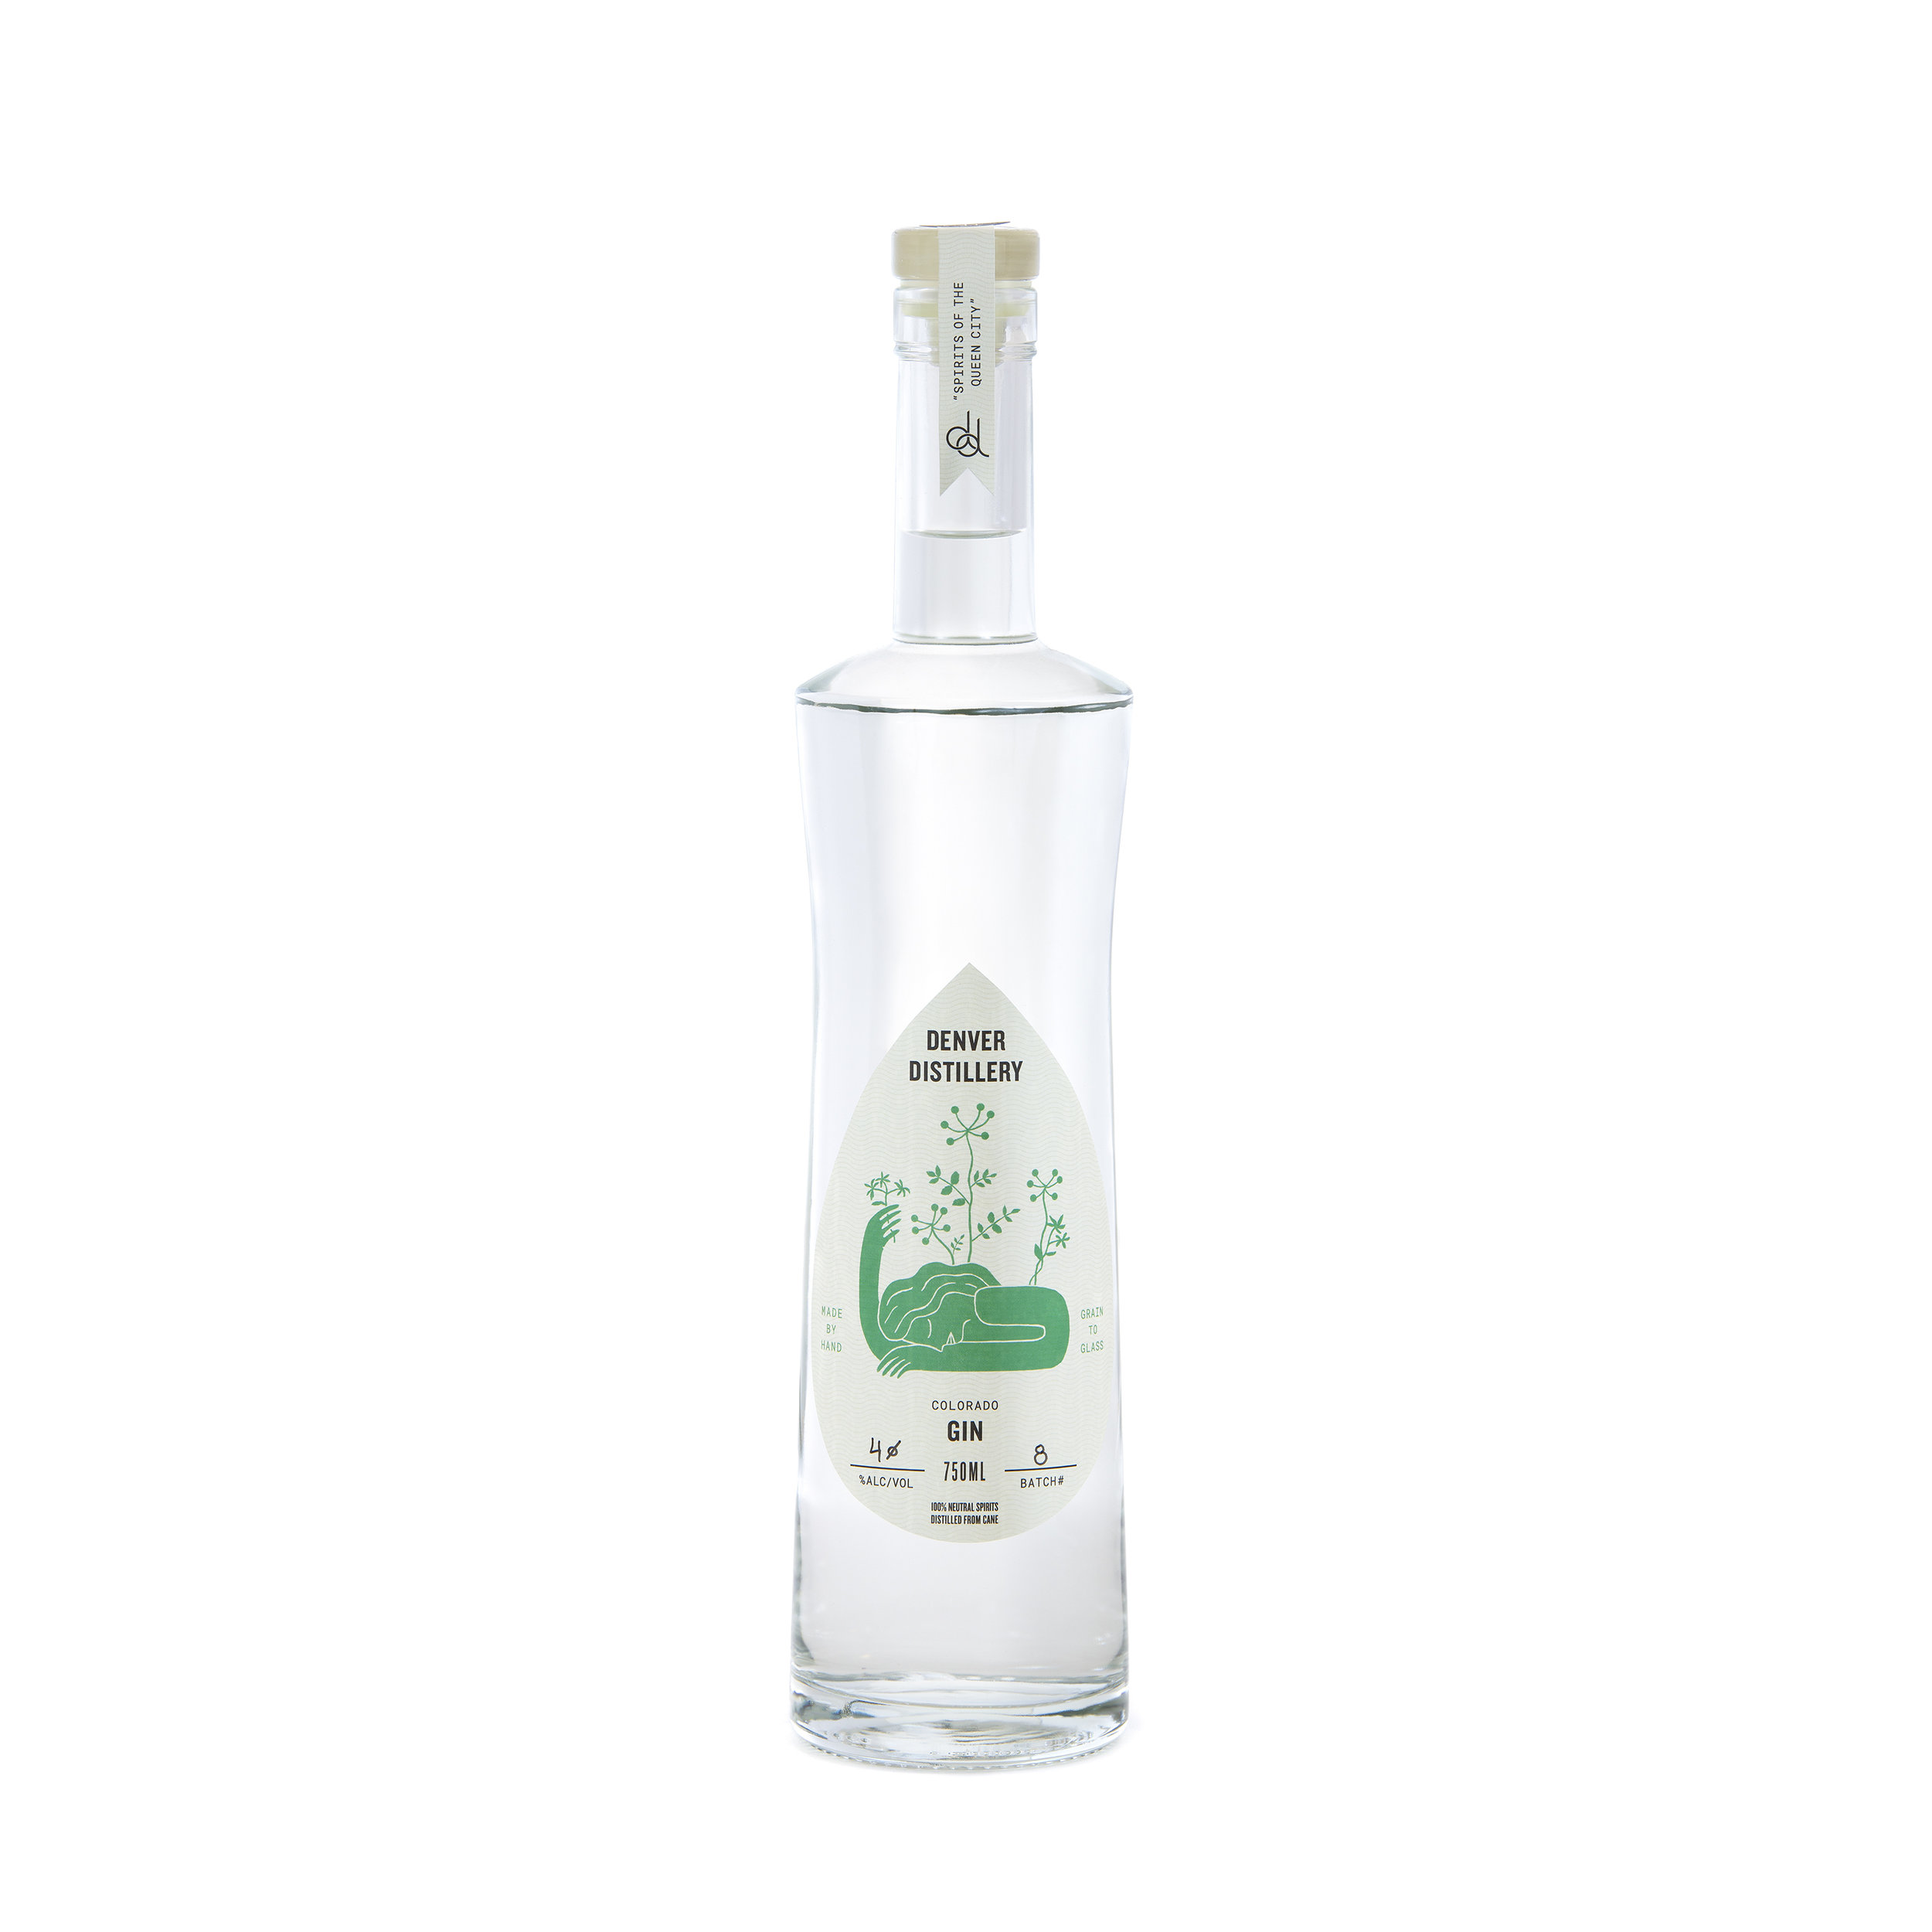 DENVER DISTILLERY GIN - A robust New American style gin from Denver's favorite gin distillery. Defined by a range of nineteen botanicals, including jasmine and bergamot, in tandem with our toasted juniper berries and our base spirit, our silver rum.When Ron Tarver opened Denver Distillery in 2018, he set out to specialize in small-batch, grain-to-glass spirits using natural, tasty, local ingredients.Our latest innovation starts with our very own silver rum, itself distilled from U.S. organic sugar cane molasses and sucanat to create a truly unique base. We then distill this one more time with toasted juniper berries and a delectable blend of 19 different botanicals in a gin basket in the column of our still. This type of vapor infusion typically results in a lighter more floral style gin.We make our own in-house tonic to compliment this refreshing twist on gin.Located in a historic South Broadway hotel in the beautiful Mile High City, Denver's first distillery-pub offers free tours by appointment.